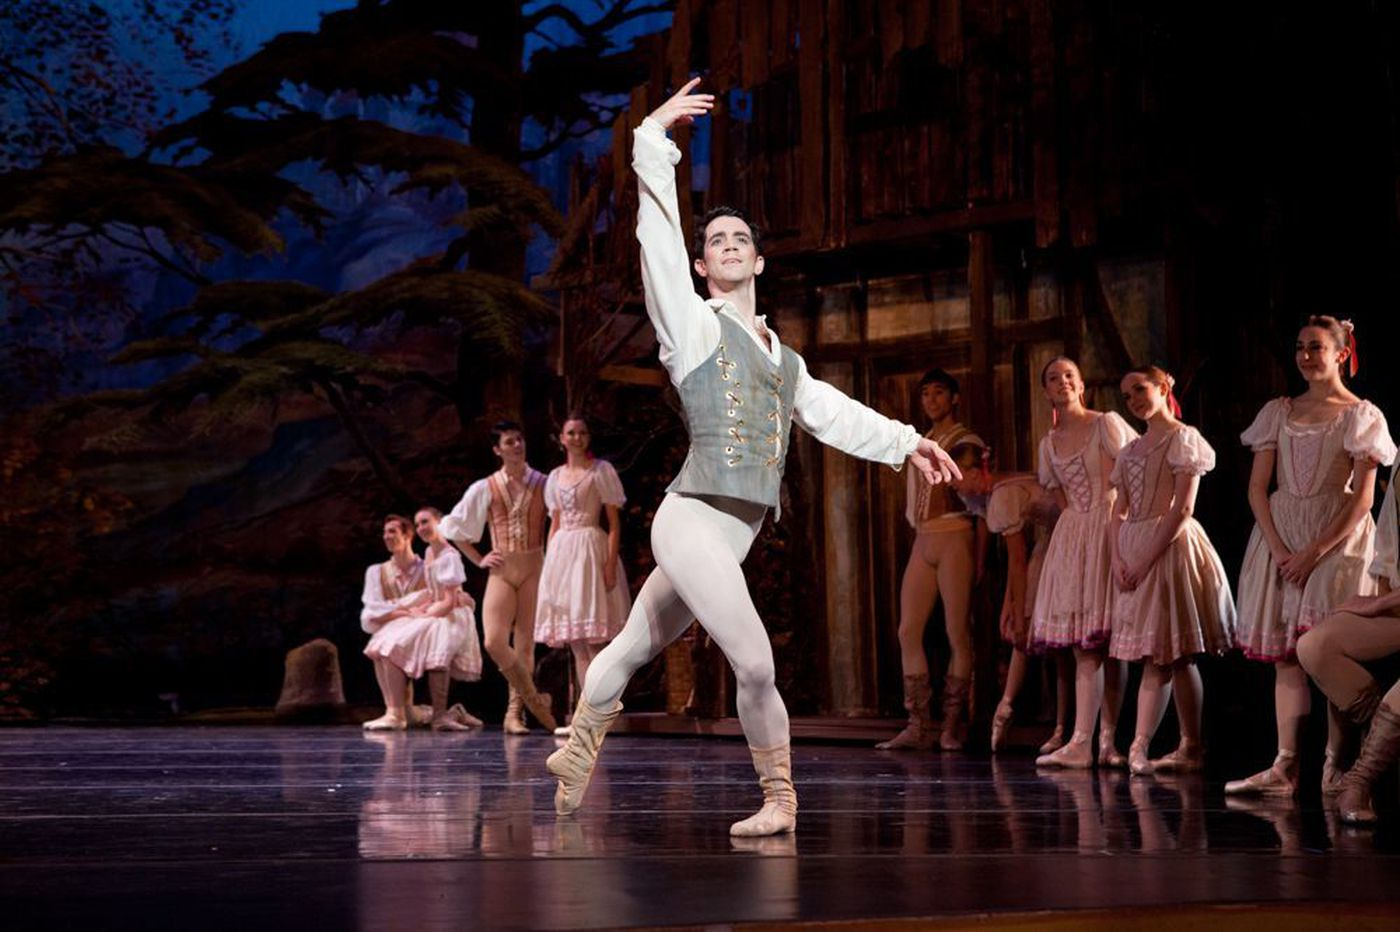 Ian Hussey to retire from Pennsylvania Ballet after a lifetime spent on stage